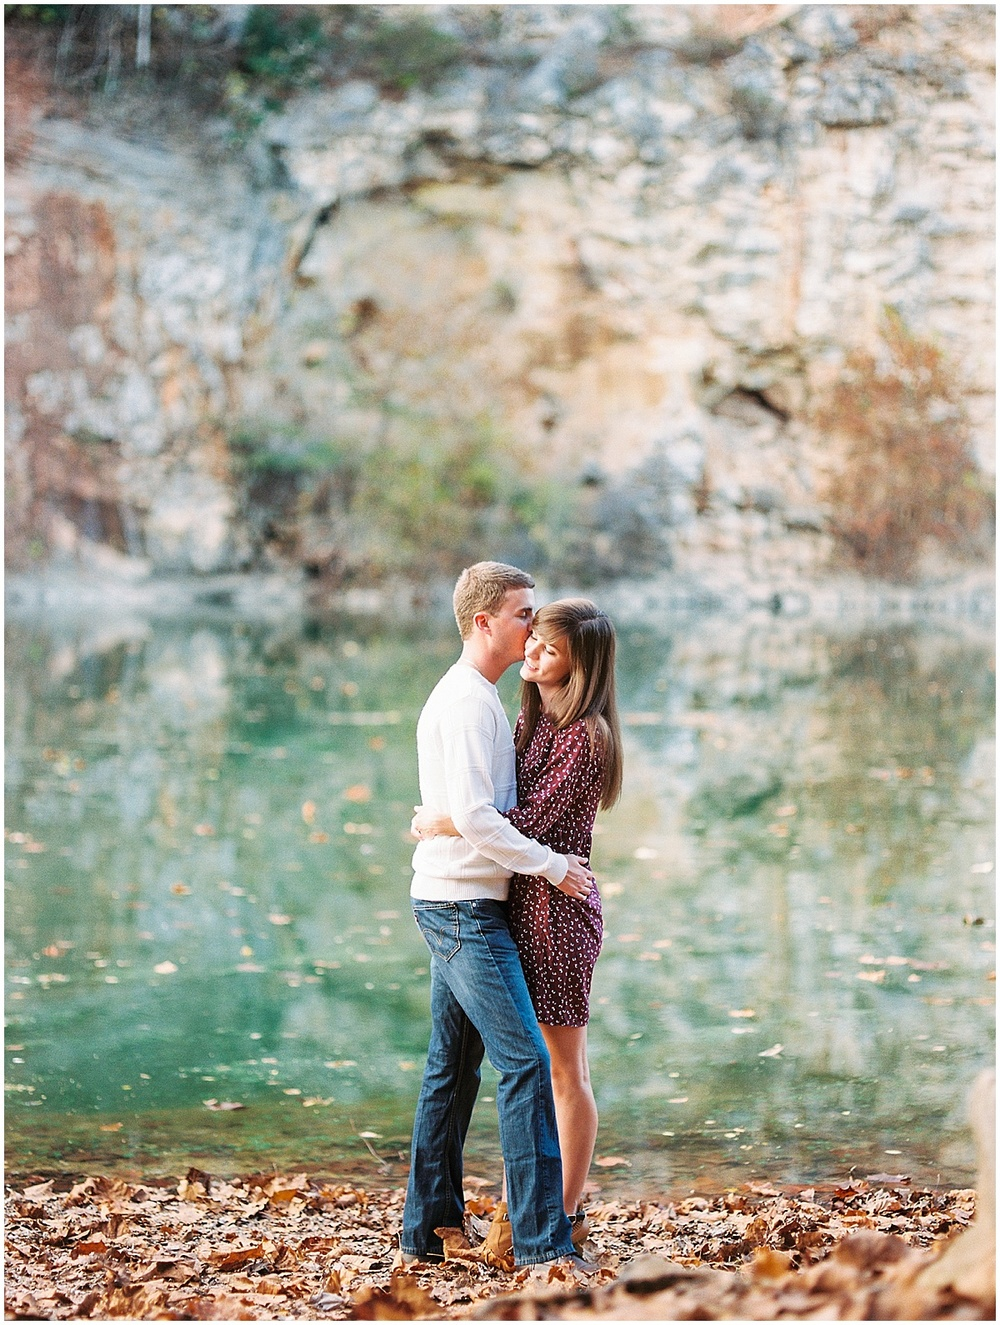 Knoxville_Engagement_Fall_Film__portra400_Abby_Elizabeth_Abigail_Malone_2015-13.jpg